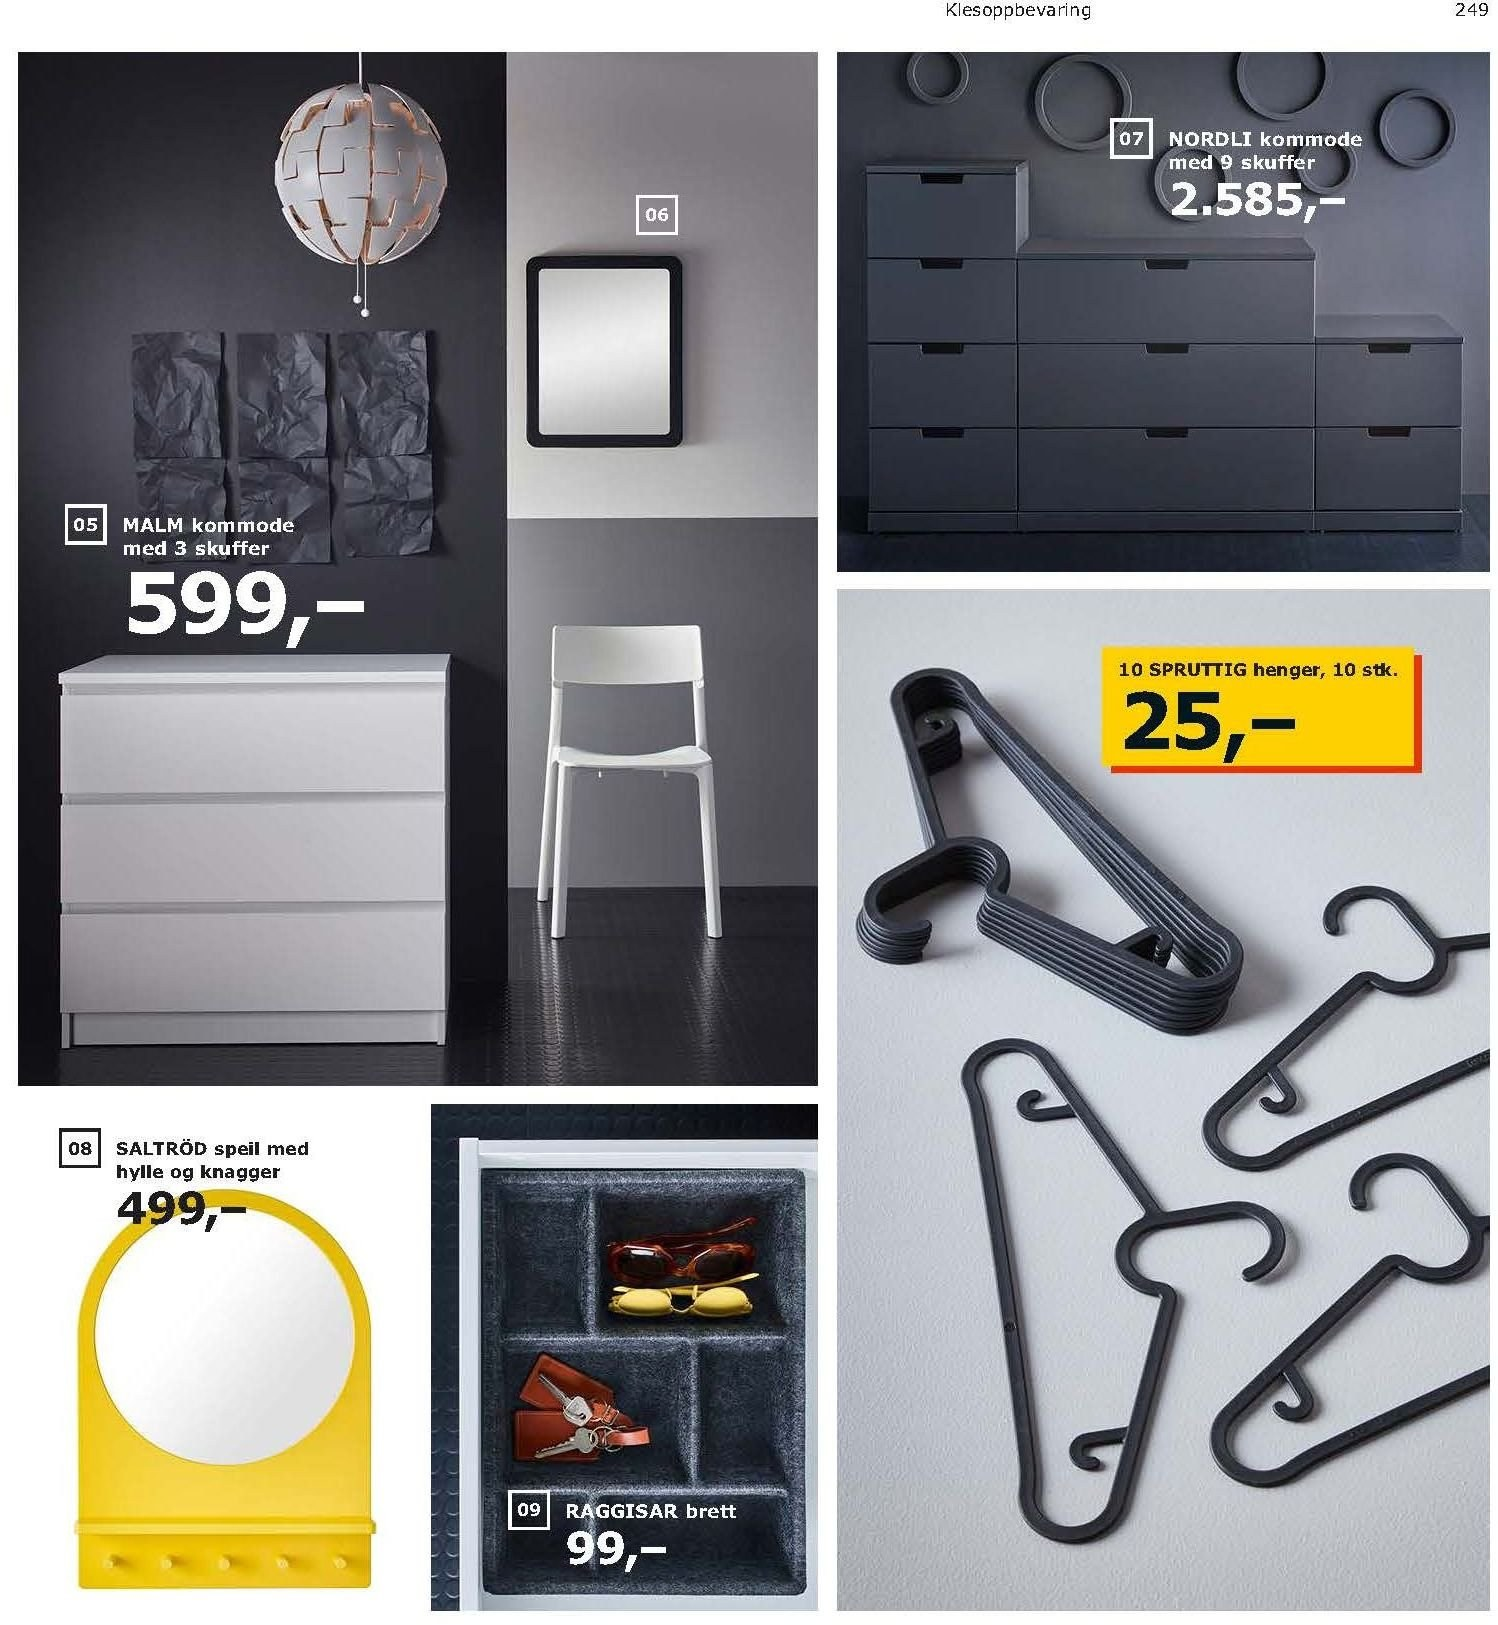 Kundeavis IKEA - 21.08.2018 - 11.08.2019. Side 249.